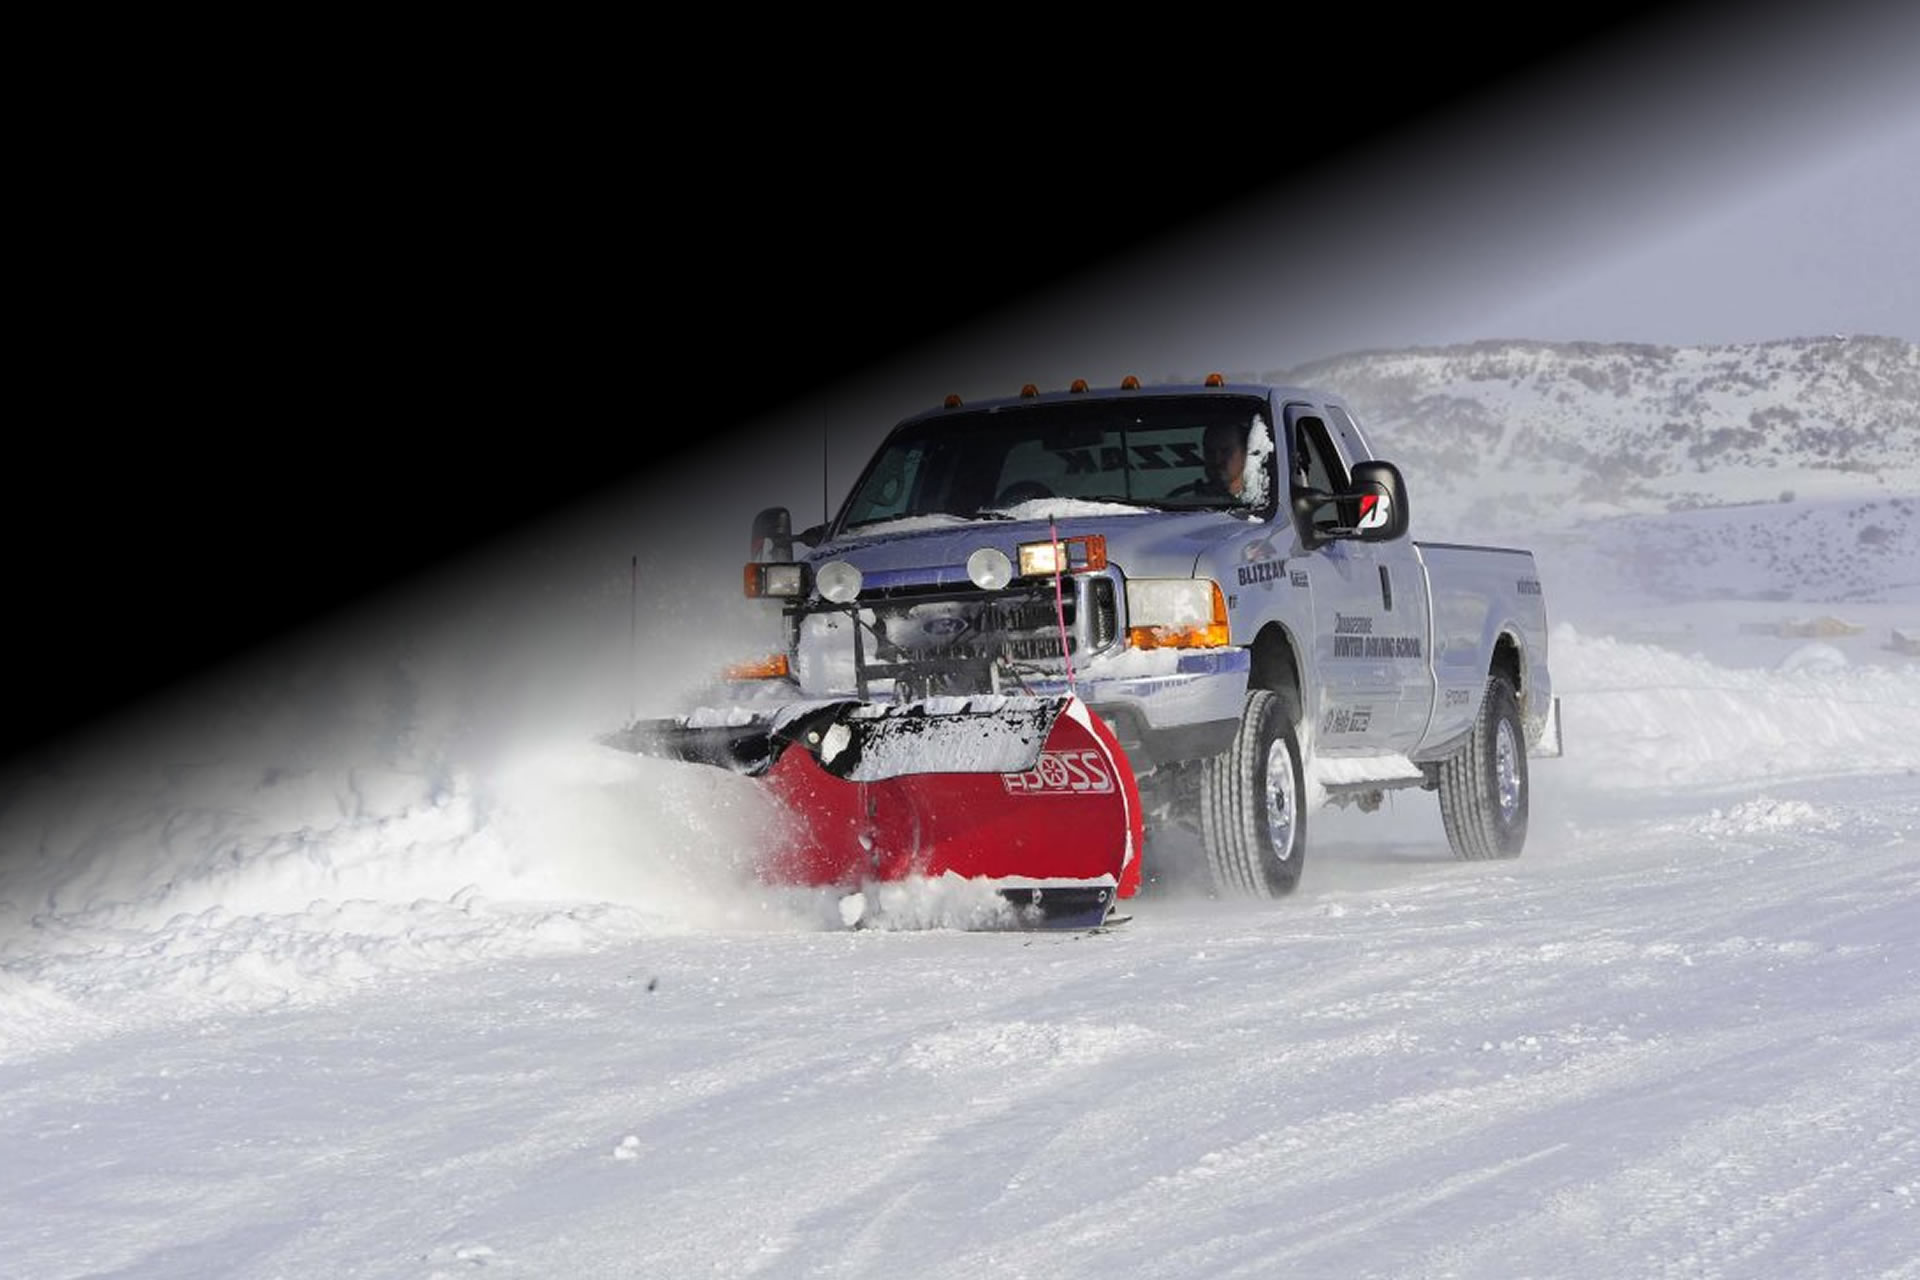 https://www.homesweethomelandscaping.com/sites/default/files/revslider/image/Slide03-Snow-Plowing_0.jpg